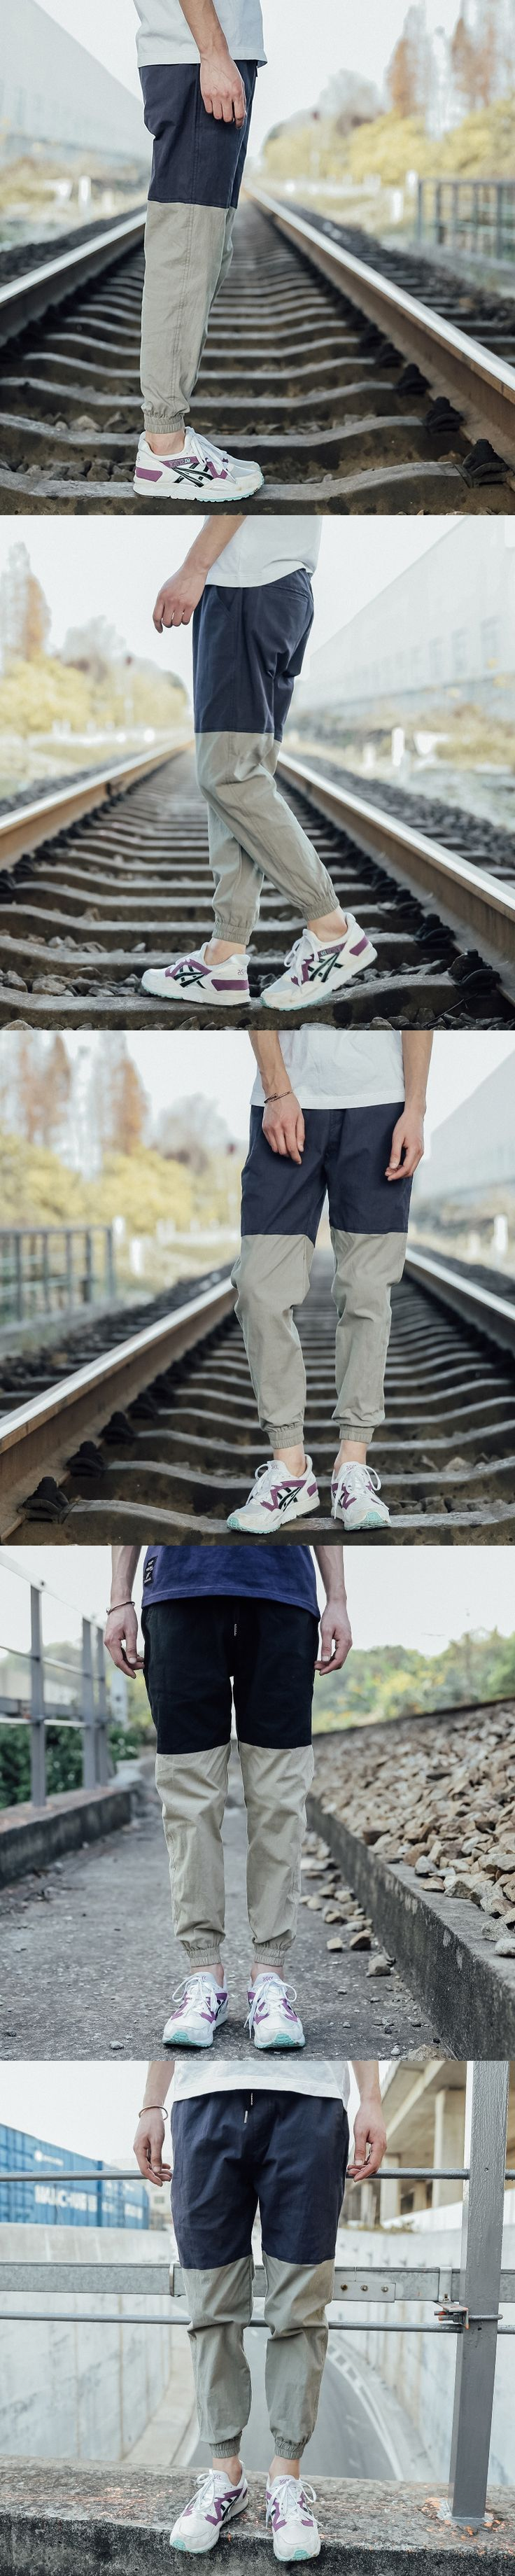 Male Trousers 2017 New Men Casual Two color stitching Loose Sweatpants Linen Trousers Joggers Mens Pants Plus Size